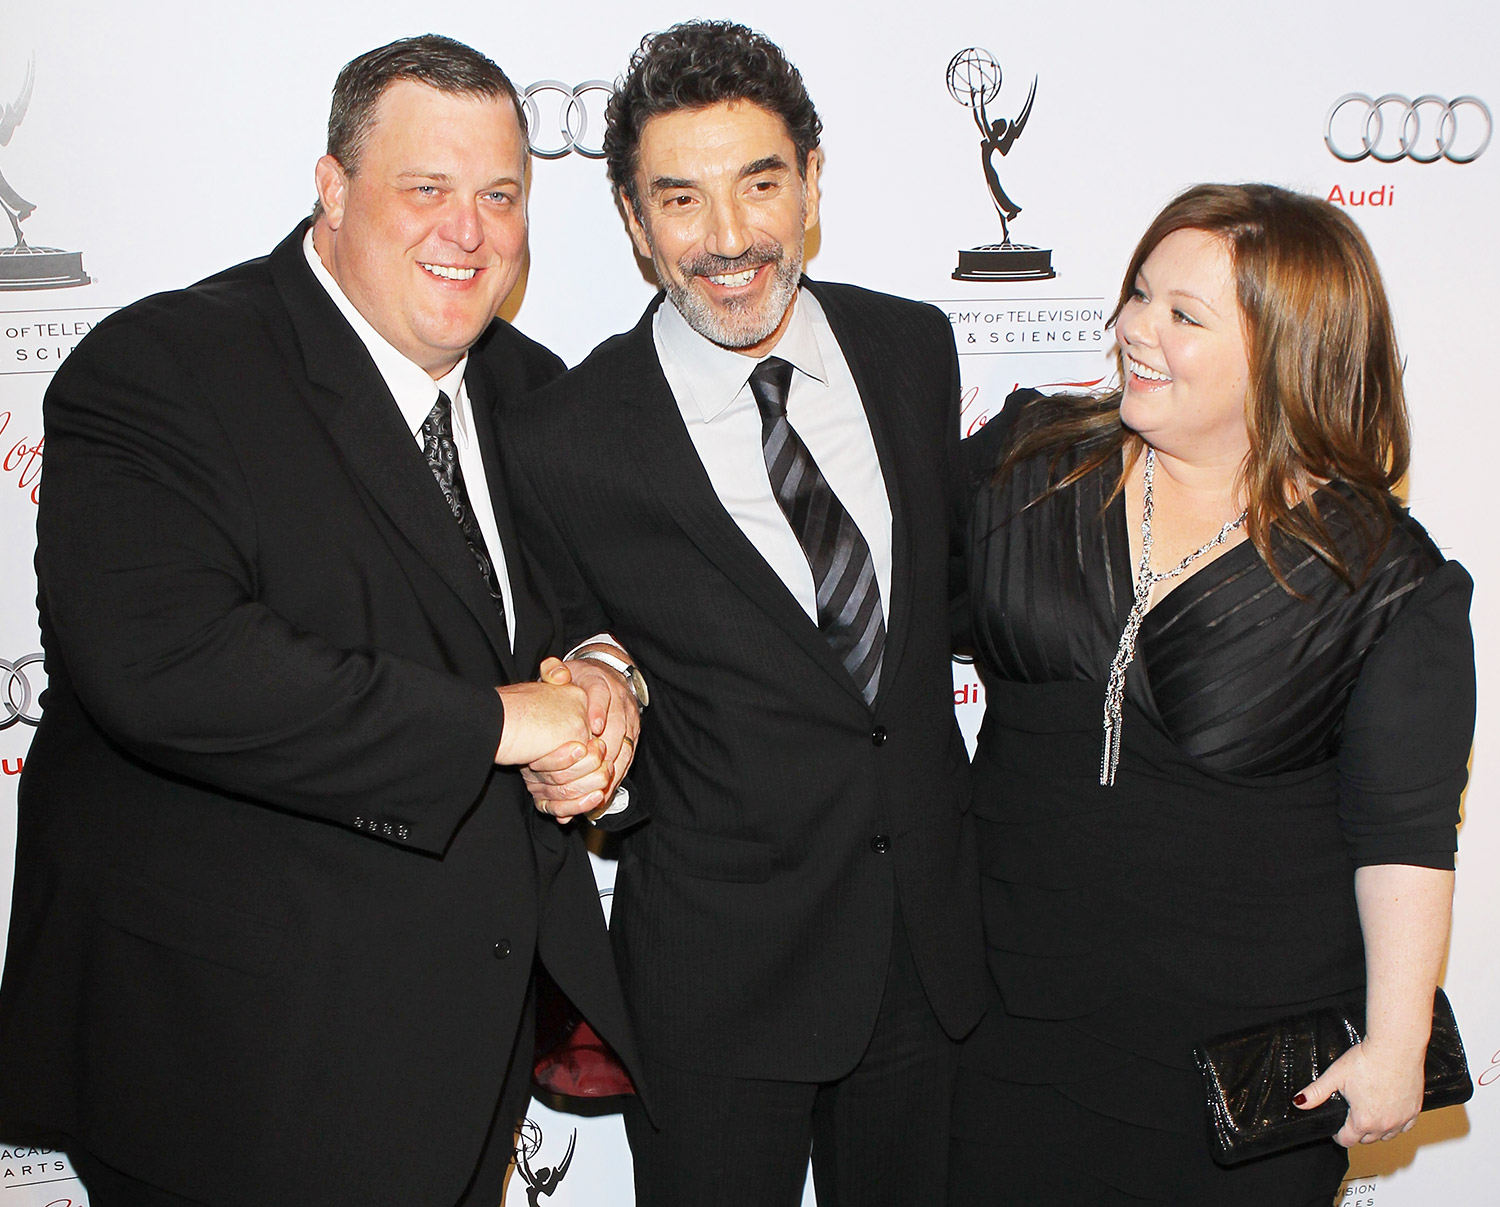 Billy Gardell, Chuck Lorre and Melissa McCarthy